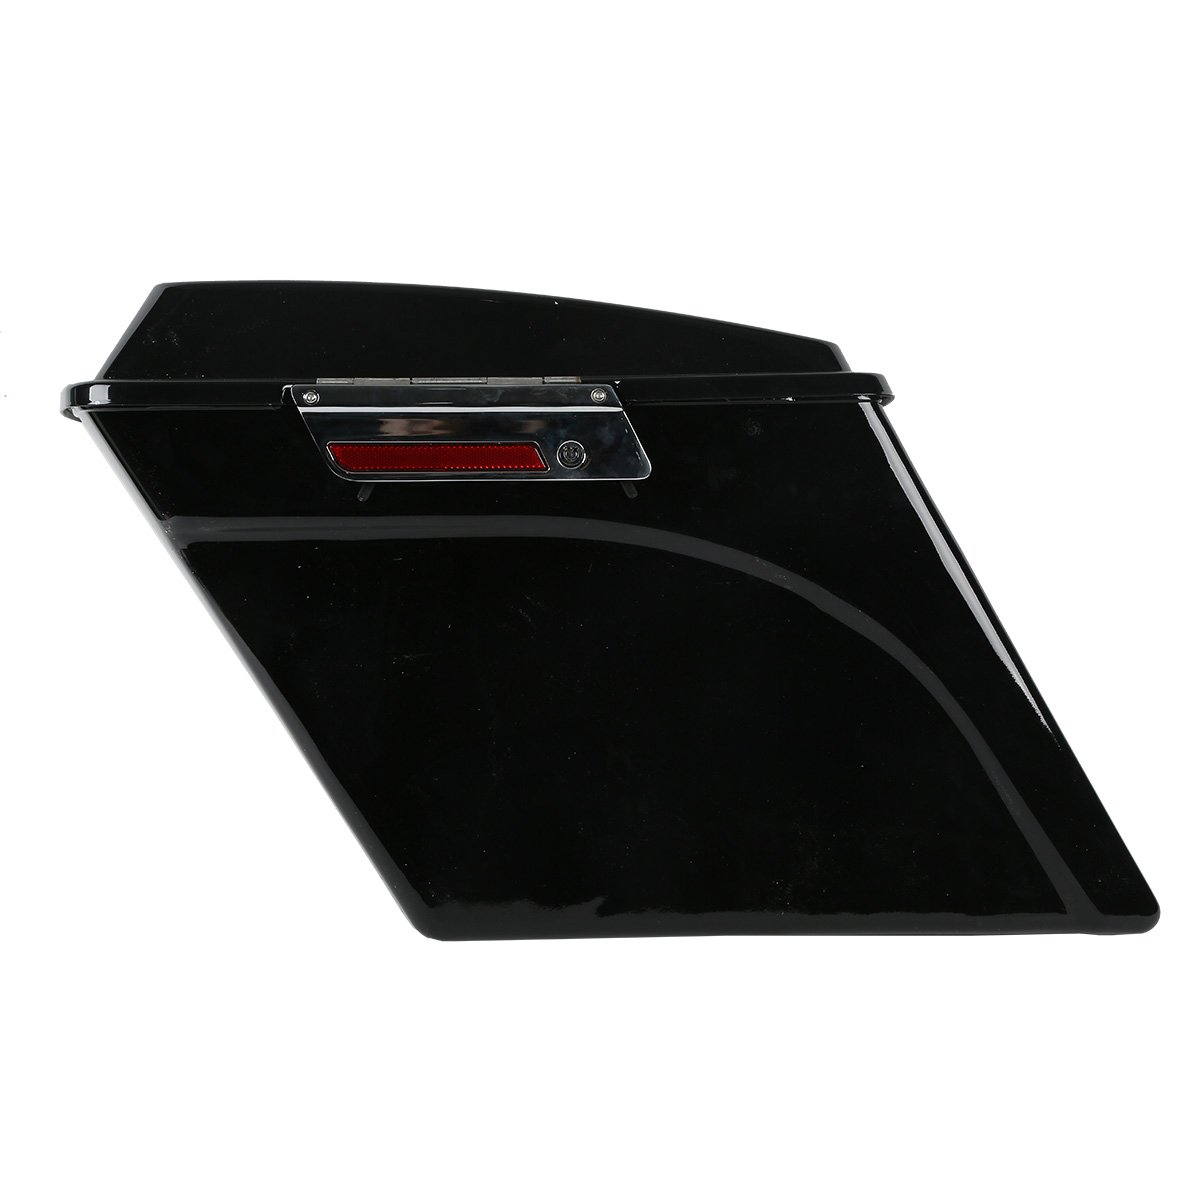 XFMT Vivid Black 5 Inch Stretched Extended Saddlebags with Lid Latch Keys Compatible with Harley Touring FLH FLT Electra Glide Road king Ultra Street 1994-2013